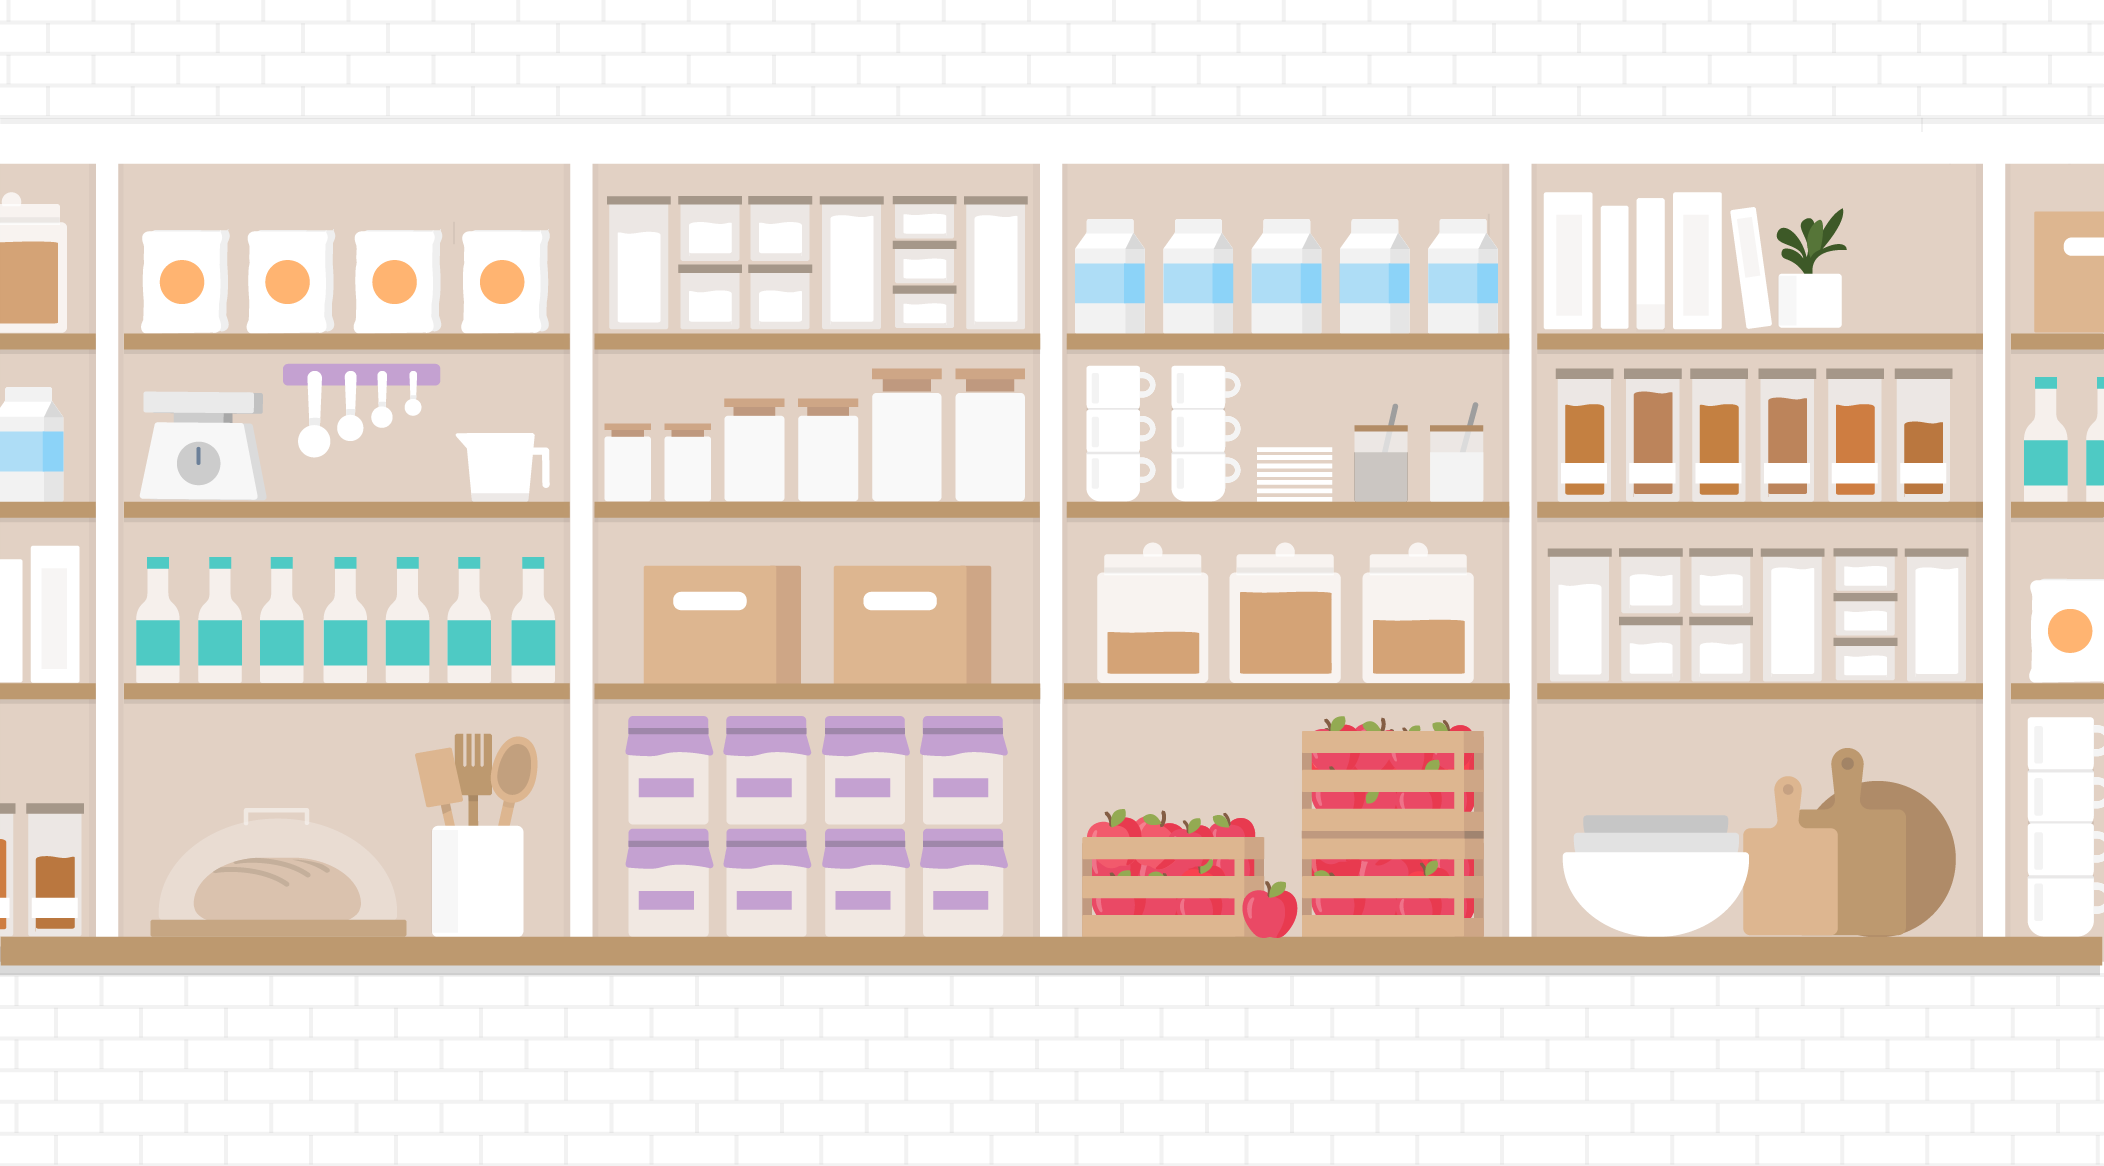 EDA is like a perfectly organized pantry that allows you to find exactly what you need without searching through clutter.